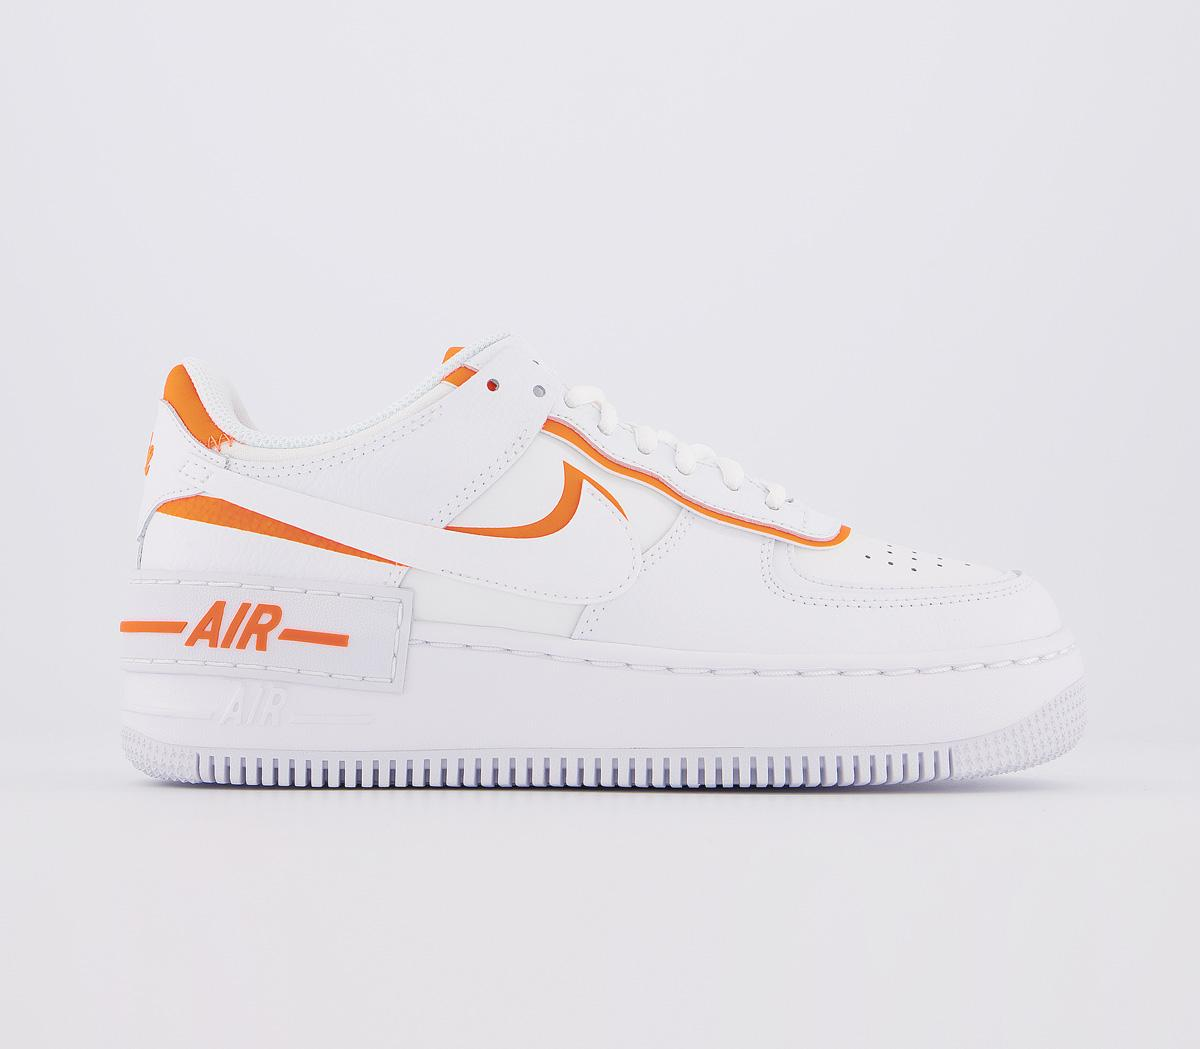 Nike Air Force 1 Shadow Trainers White Summit White Orange Hers Trainers Nike air force 1 shadow releasing in total orange. air force 1 shadow trainers